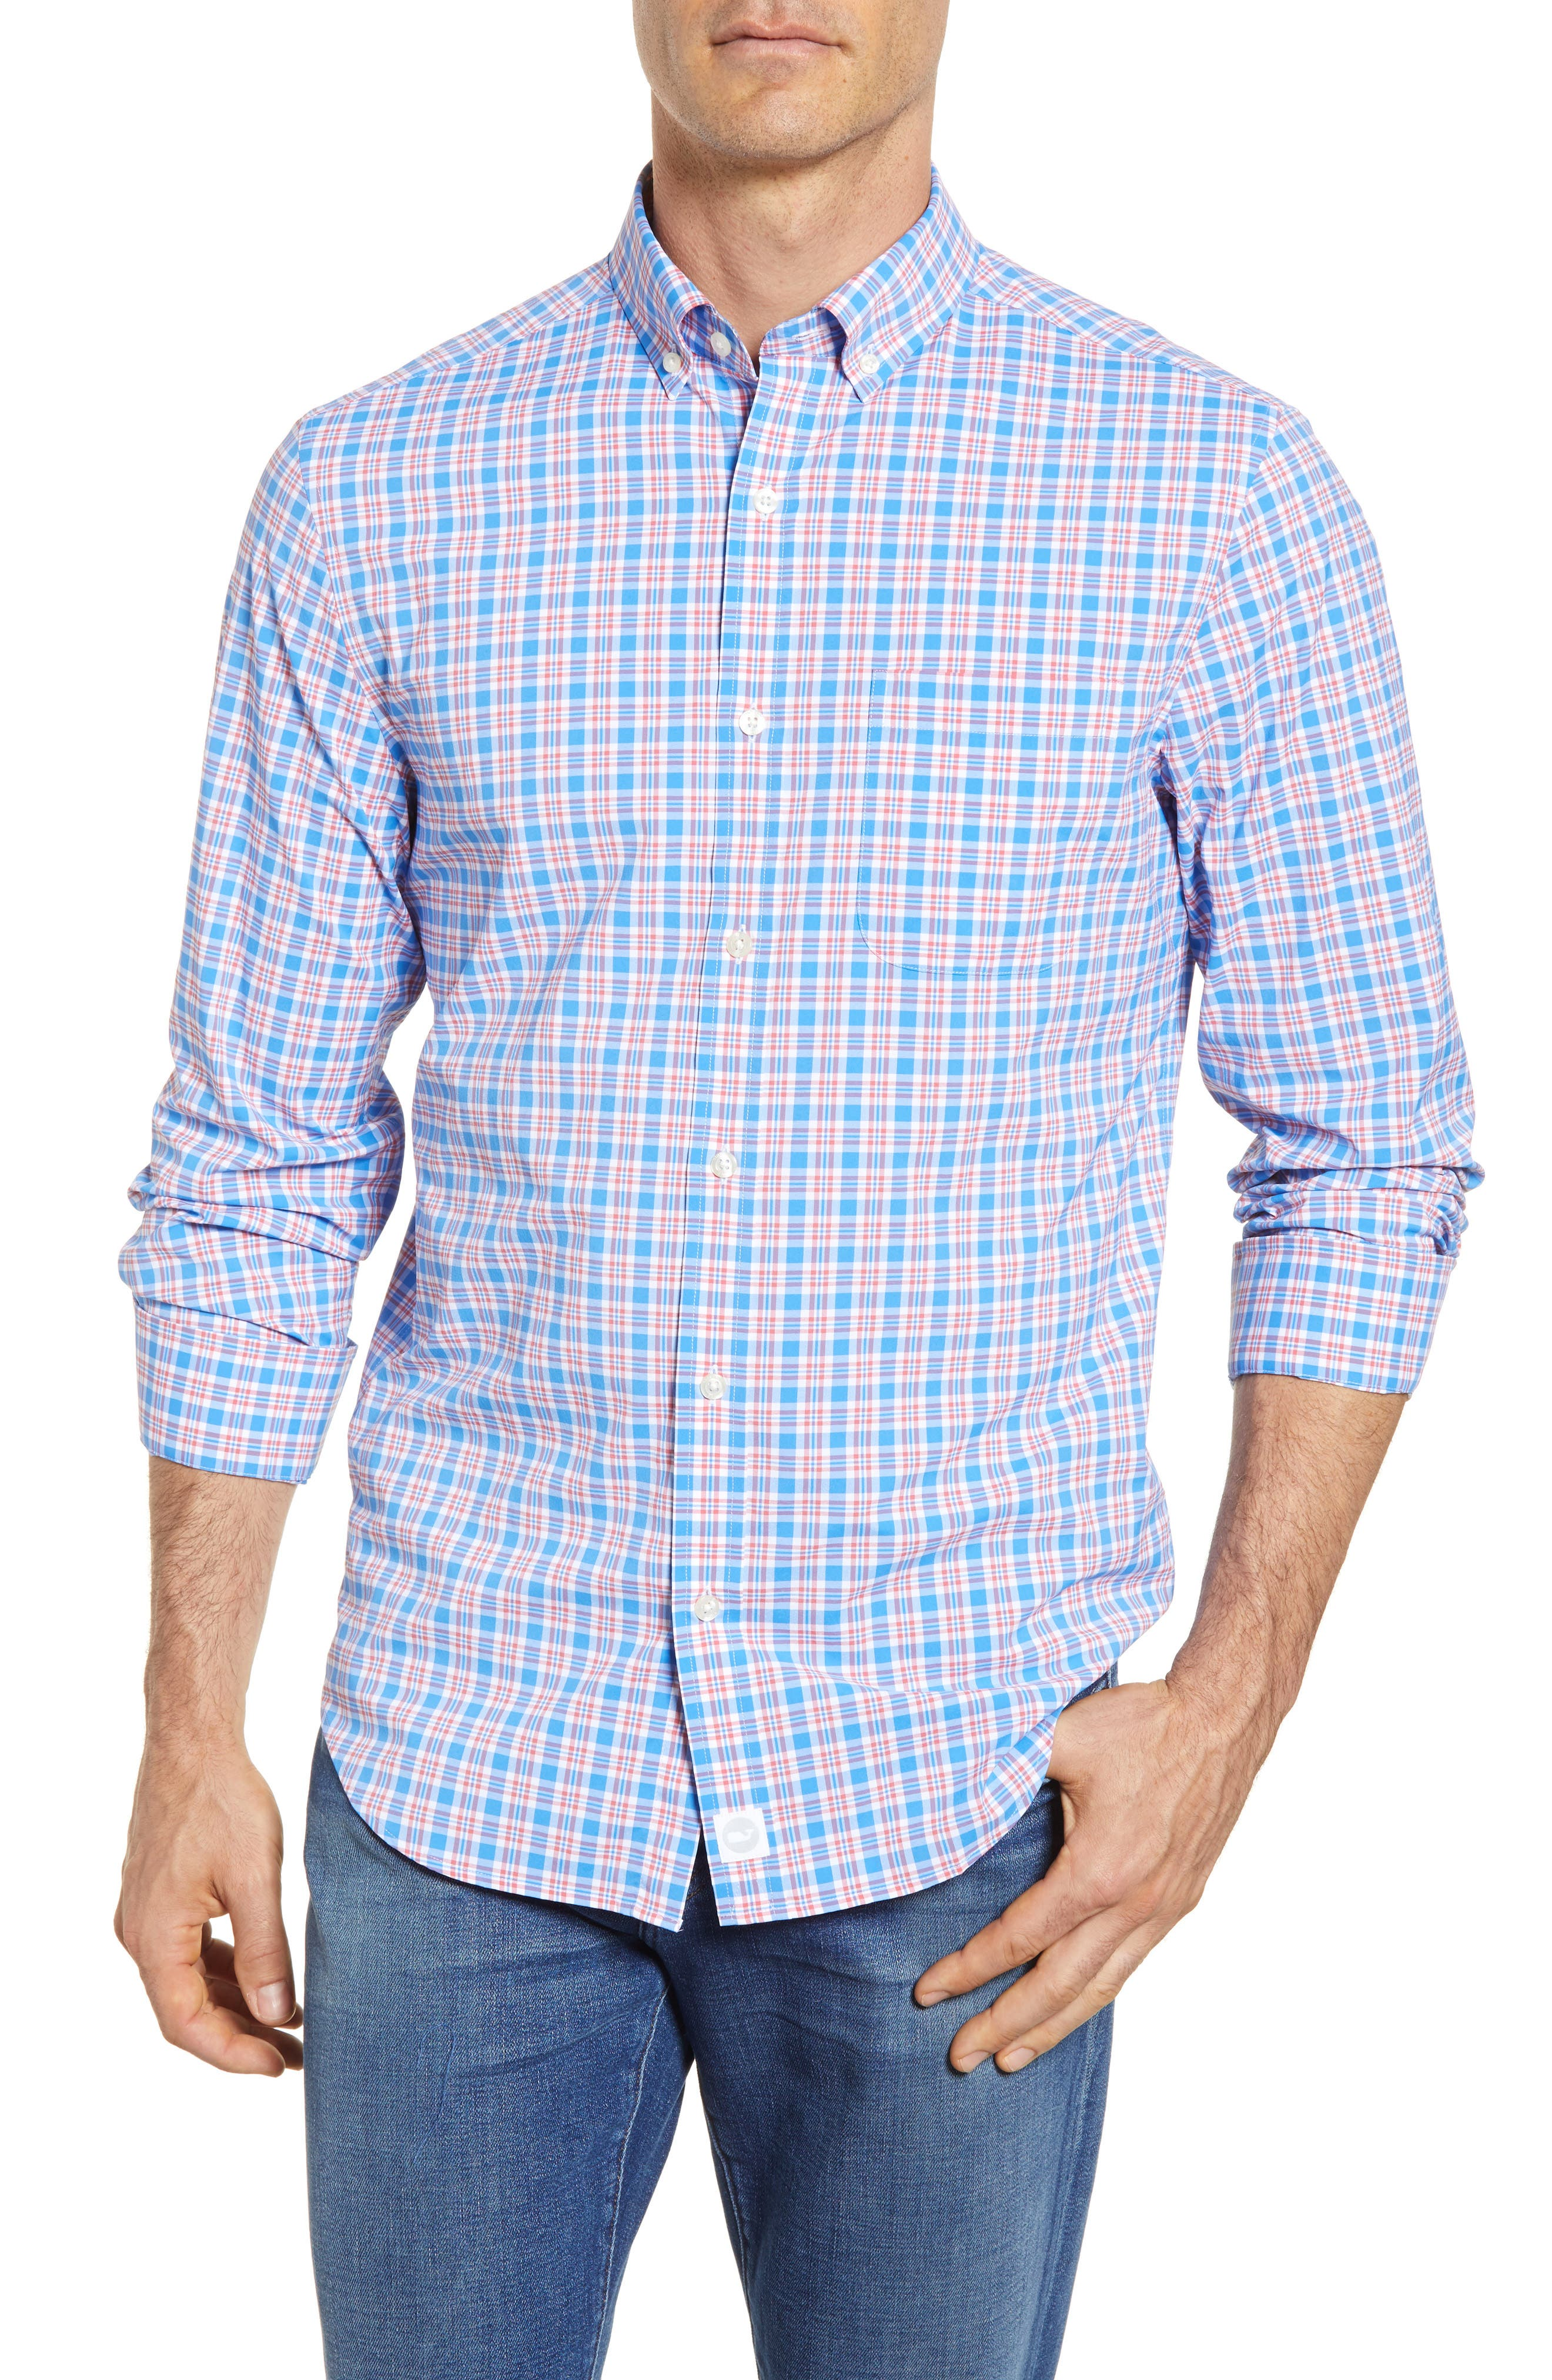 Lighthouse Road Regular Fit Plaid Sport Shirt,                         Main,                         color, 415